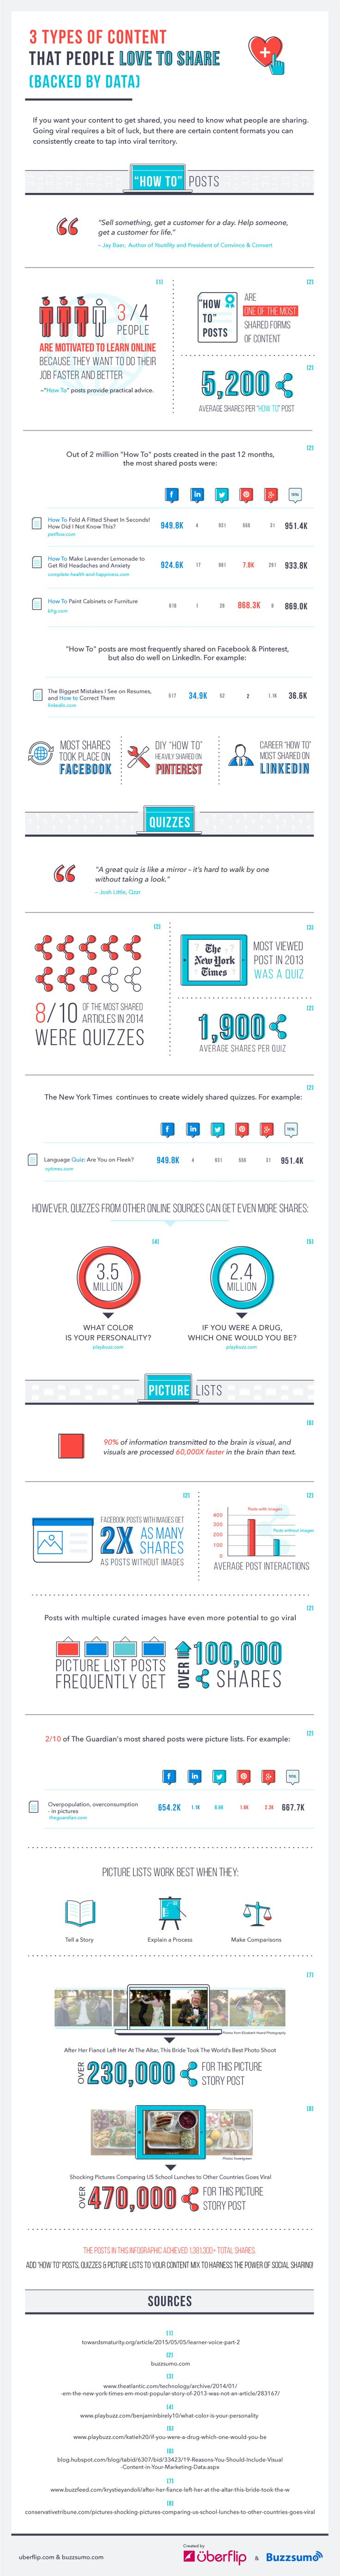 3 Contagious Content Formats Your Content Strategy Needs - #Infographic #contentmarketing